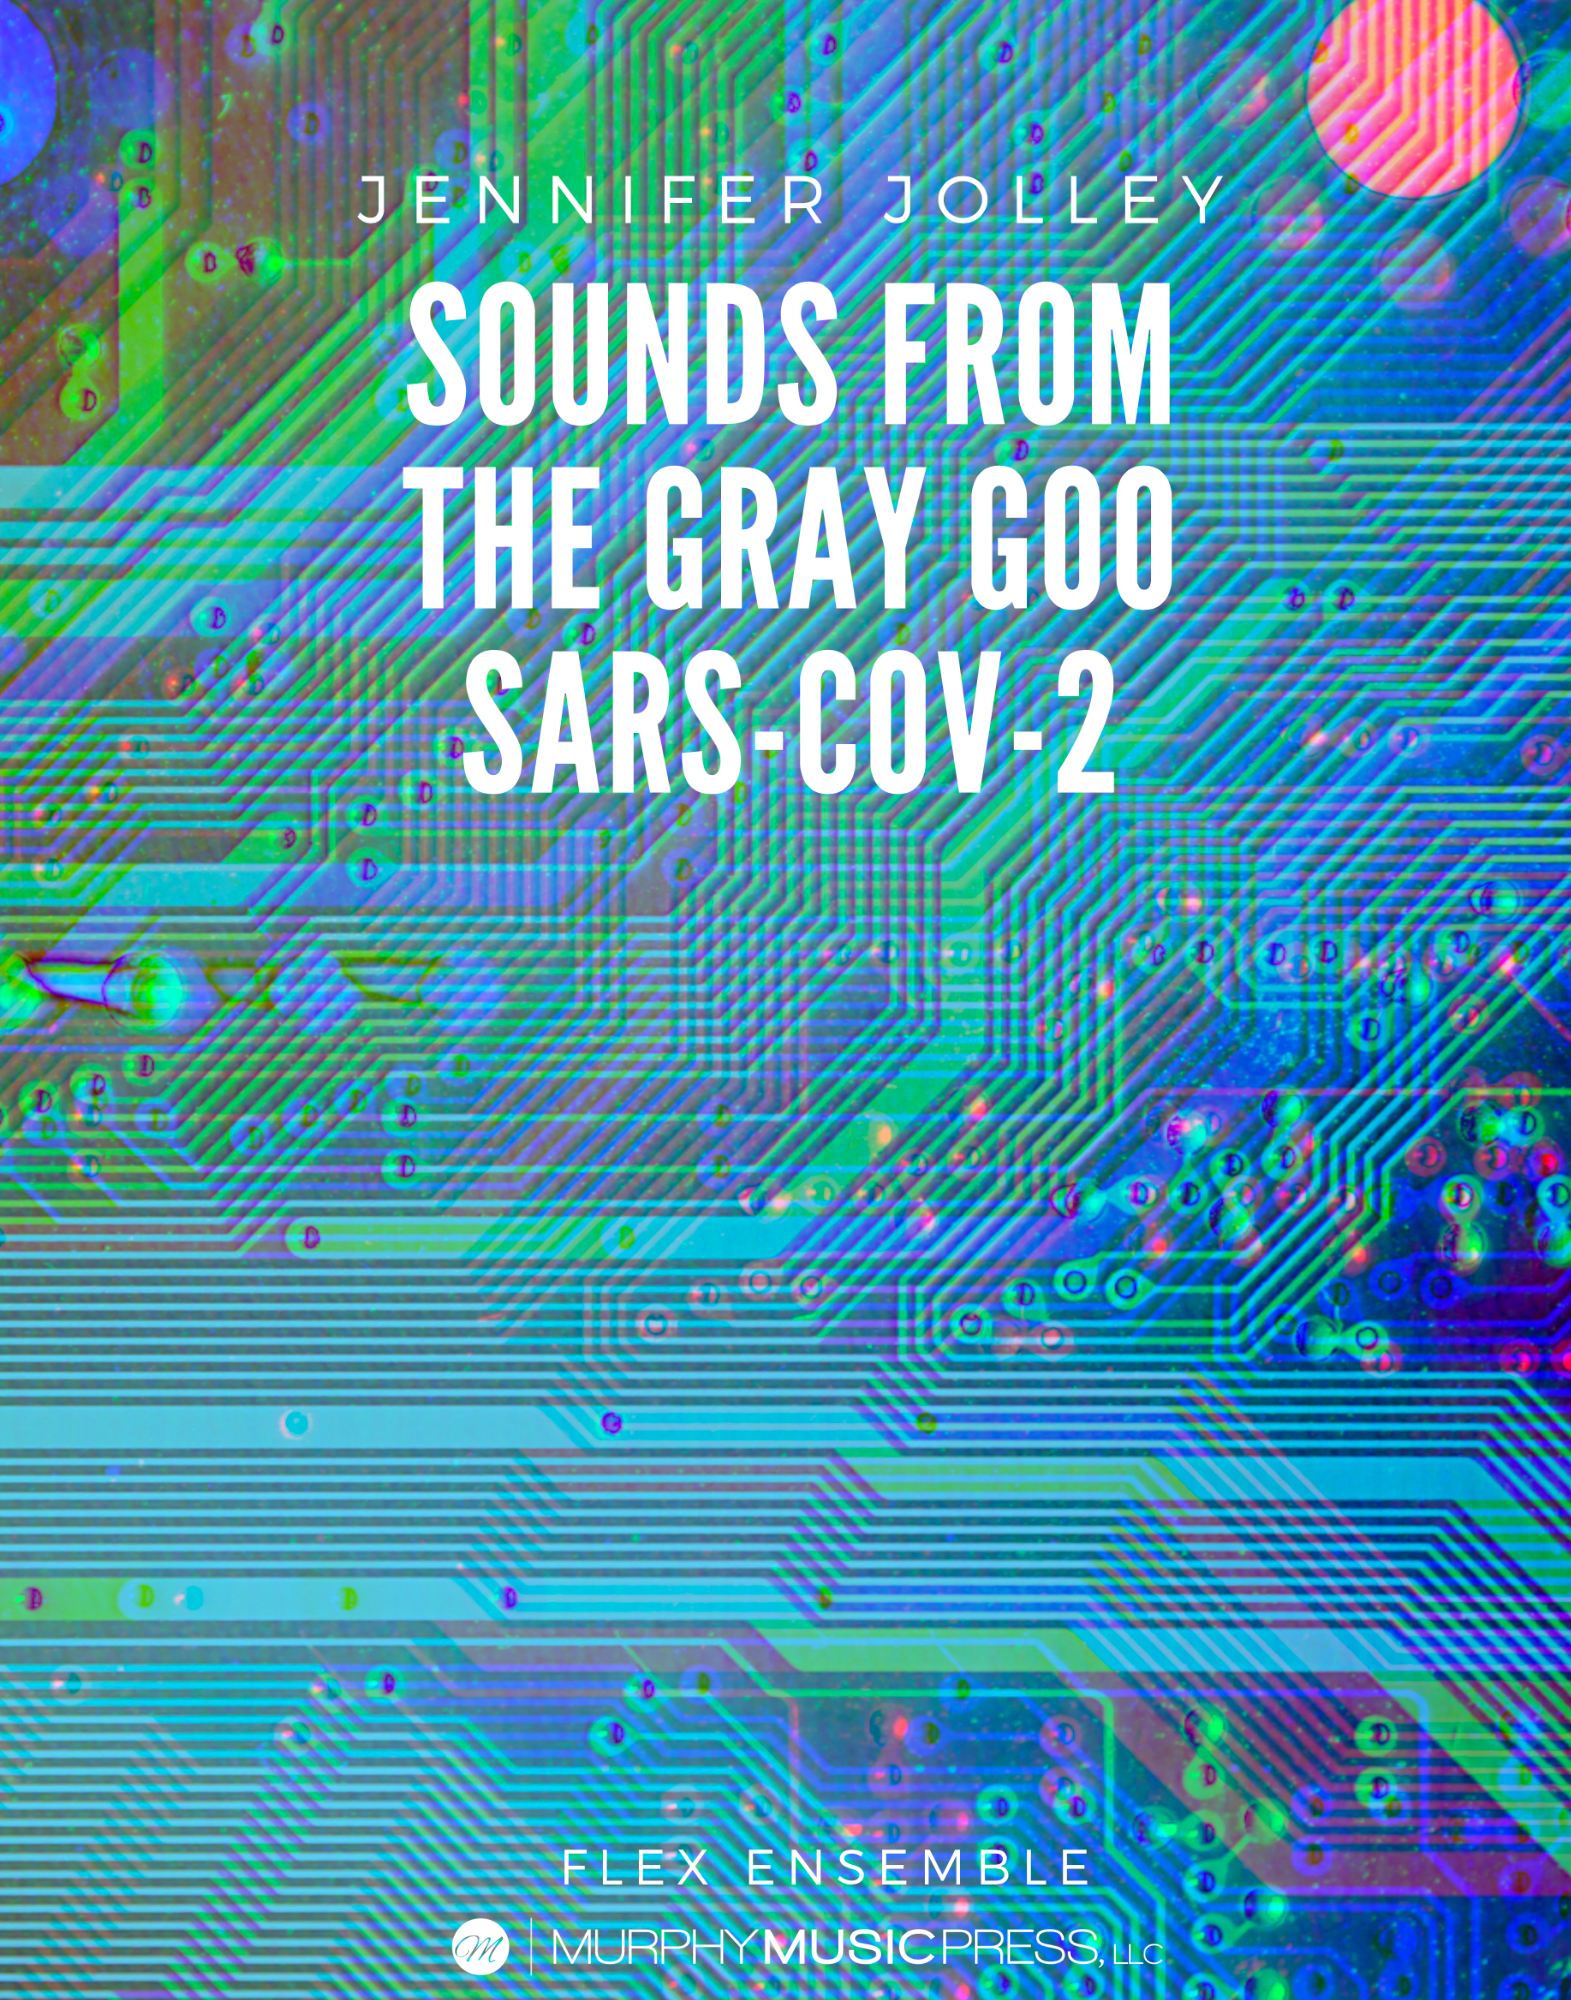 Sounds From The Gary Goo by Jennifer Jolley